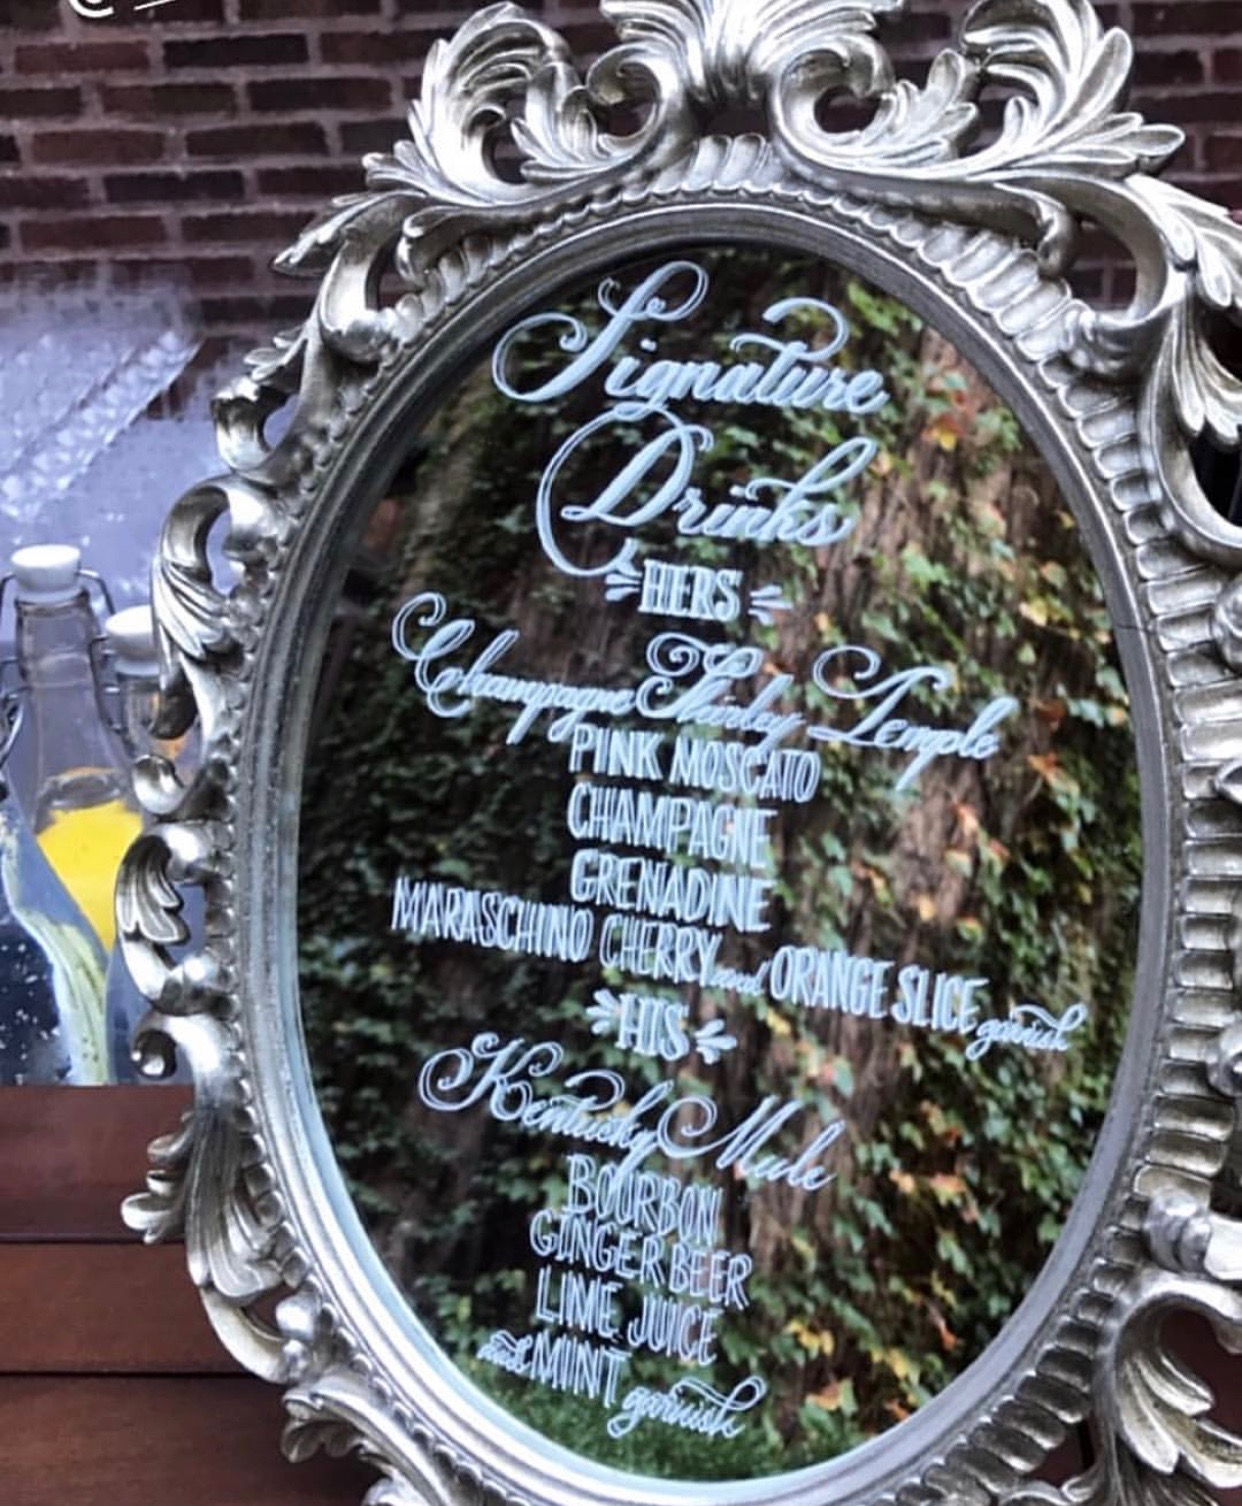 """9.5"""" x 17"""" Oval Mirror. Silver, metal, ornate frame. Perfect for a menu or signature drinks. $25 rental fee. 